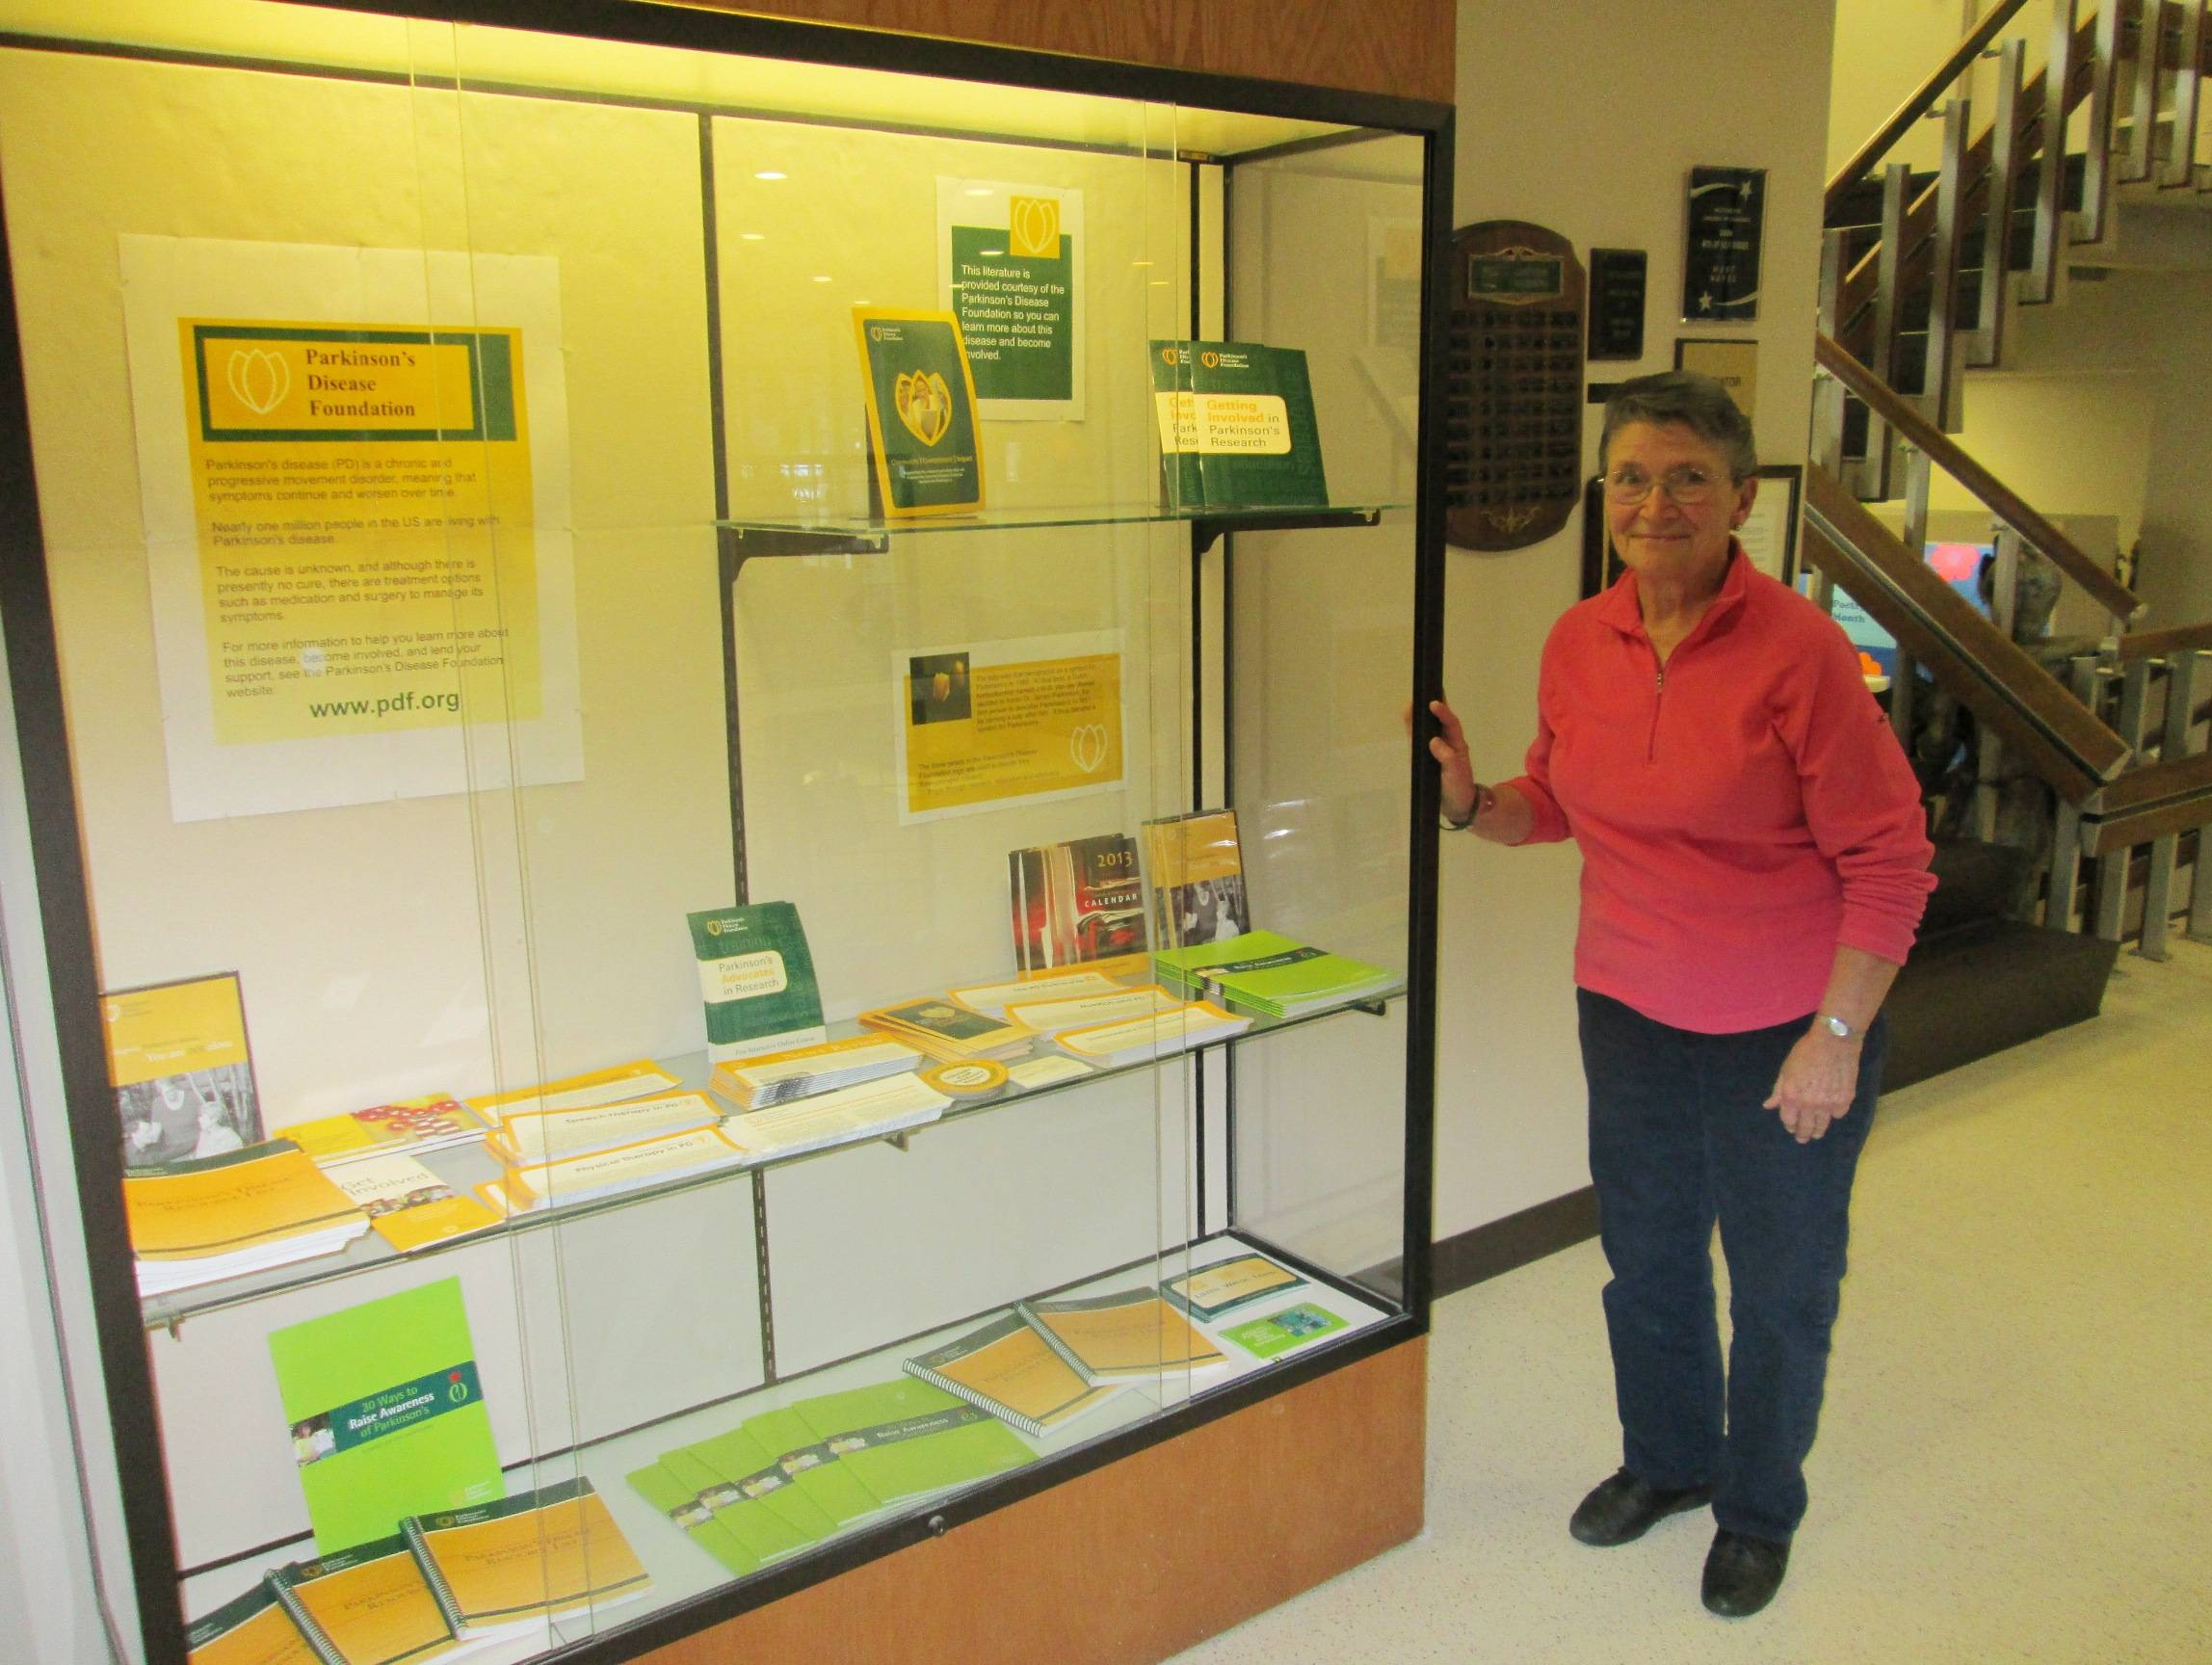 Westchester, IL resident and PDF Research Advocate Rosemary Sammons at the Westchester Public Library with a Parkinson's awareness display featuring free educational resources on the disease.